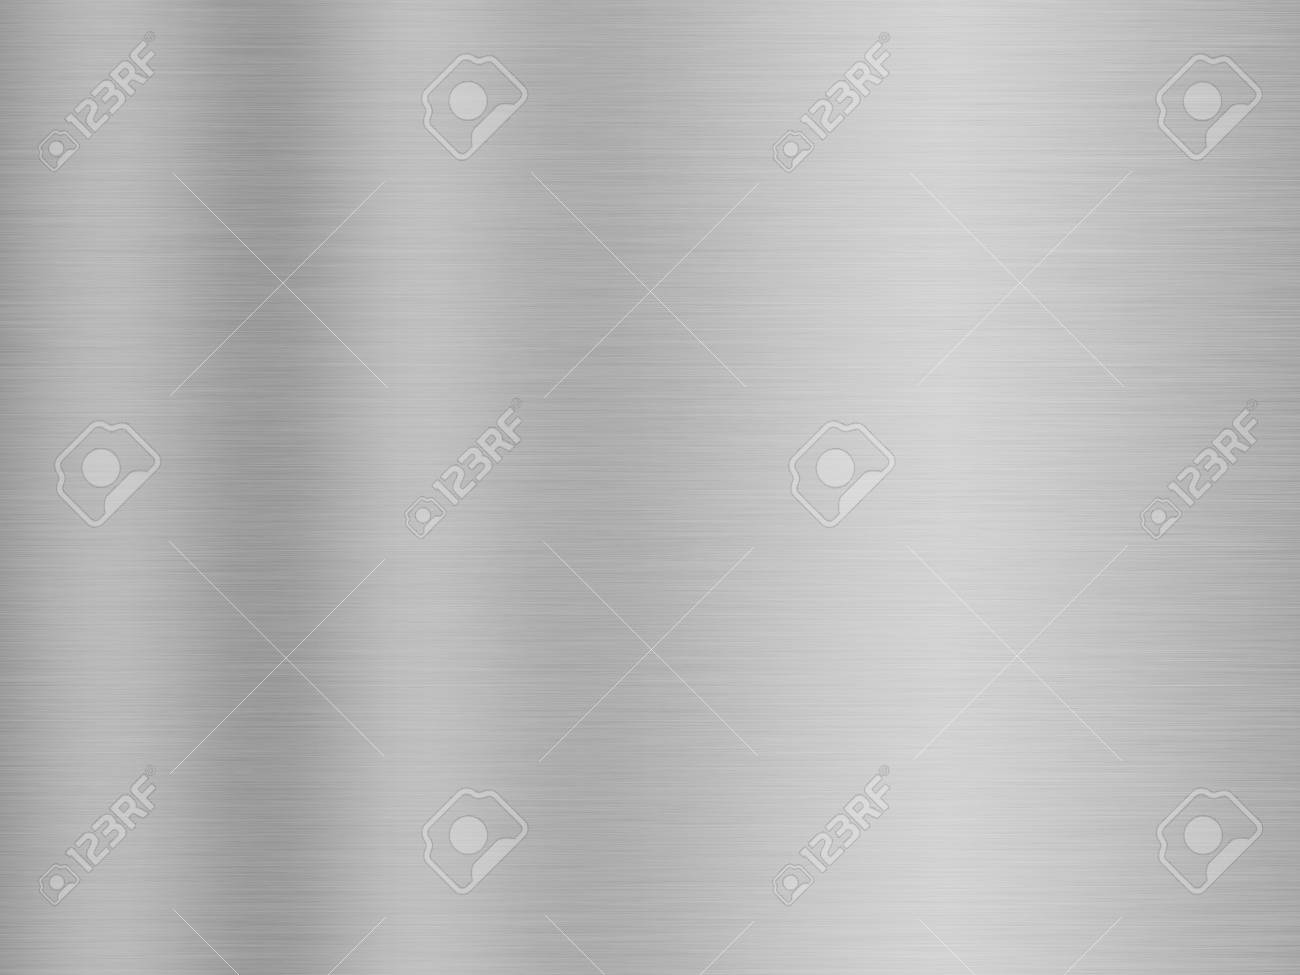 Stainless steel texture or metal texture background Banque d'images - 75076754